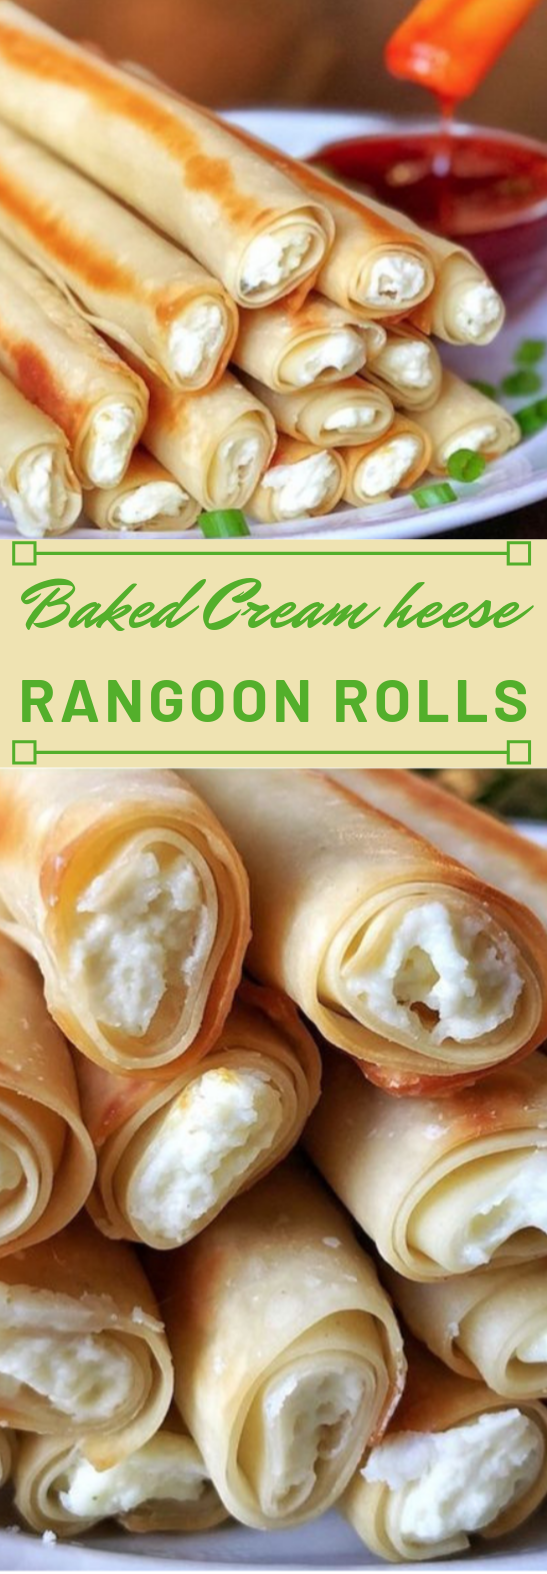 Baked Cream Cheese Rangoon Rolls #diet #healthy #rangoon #healthydiet #lowcarb